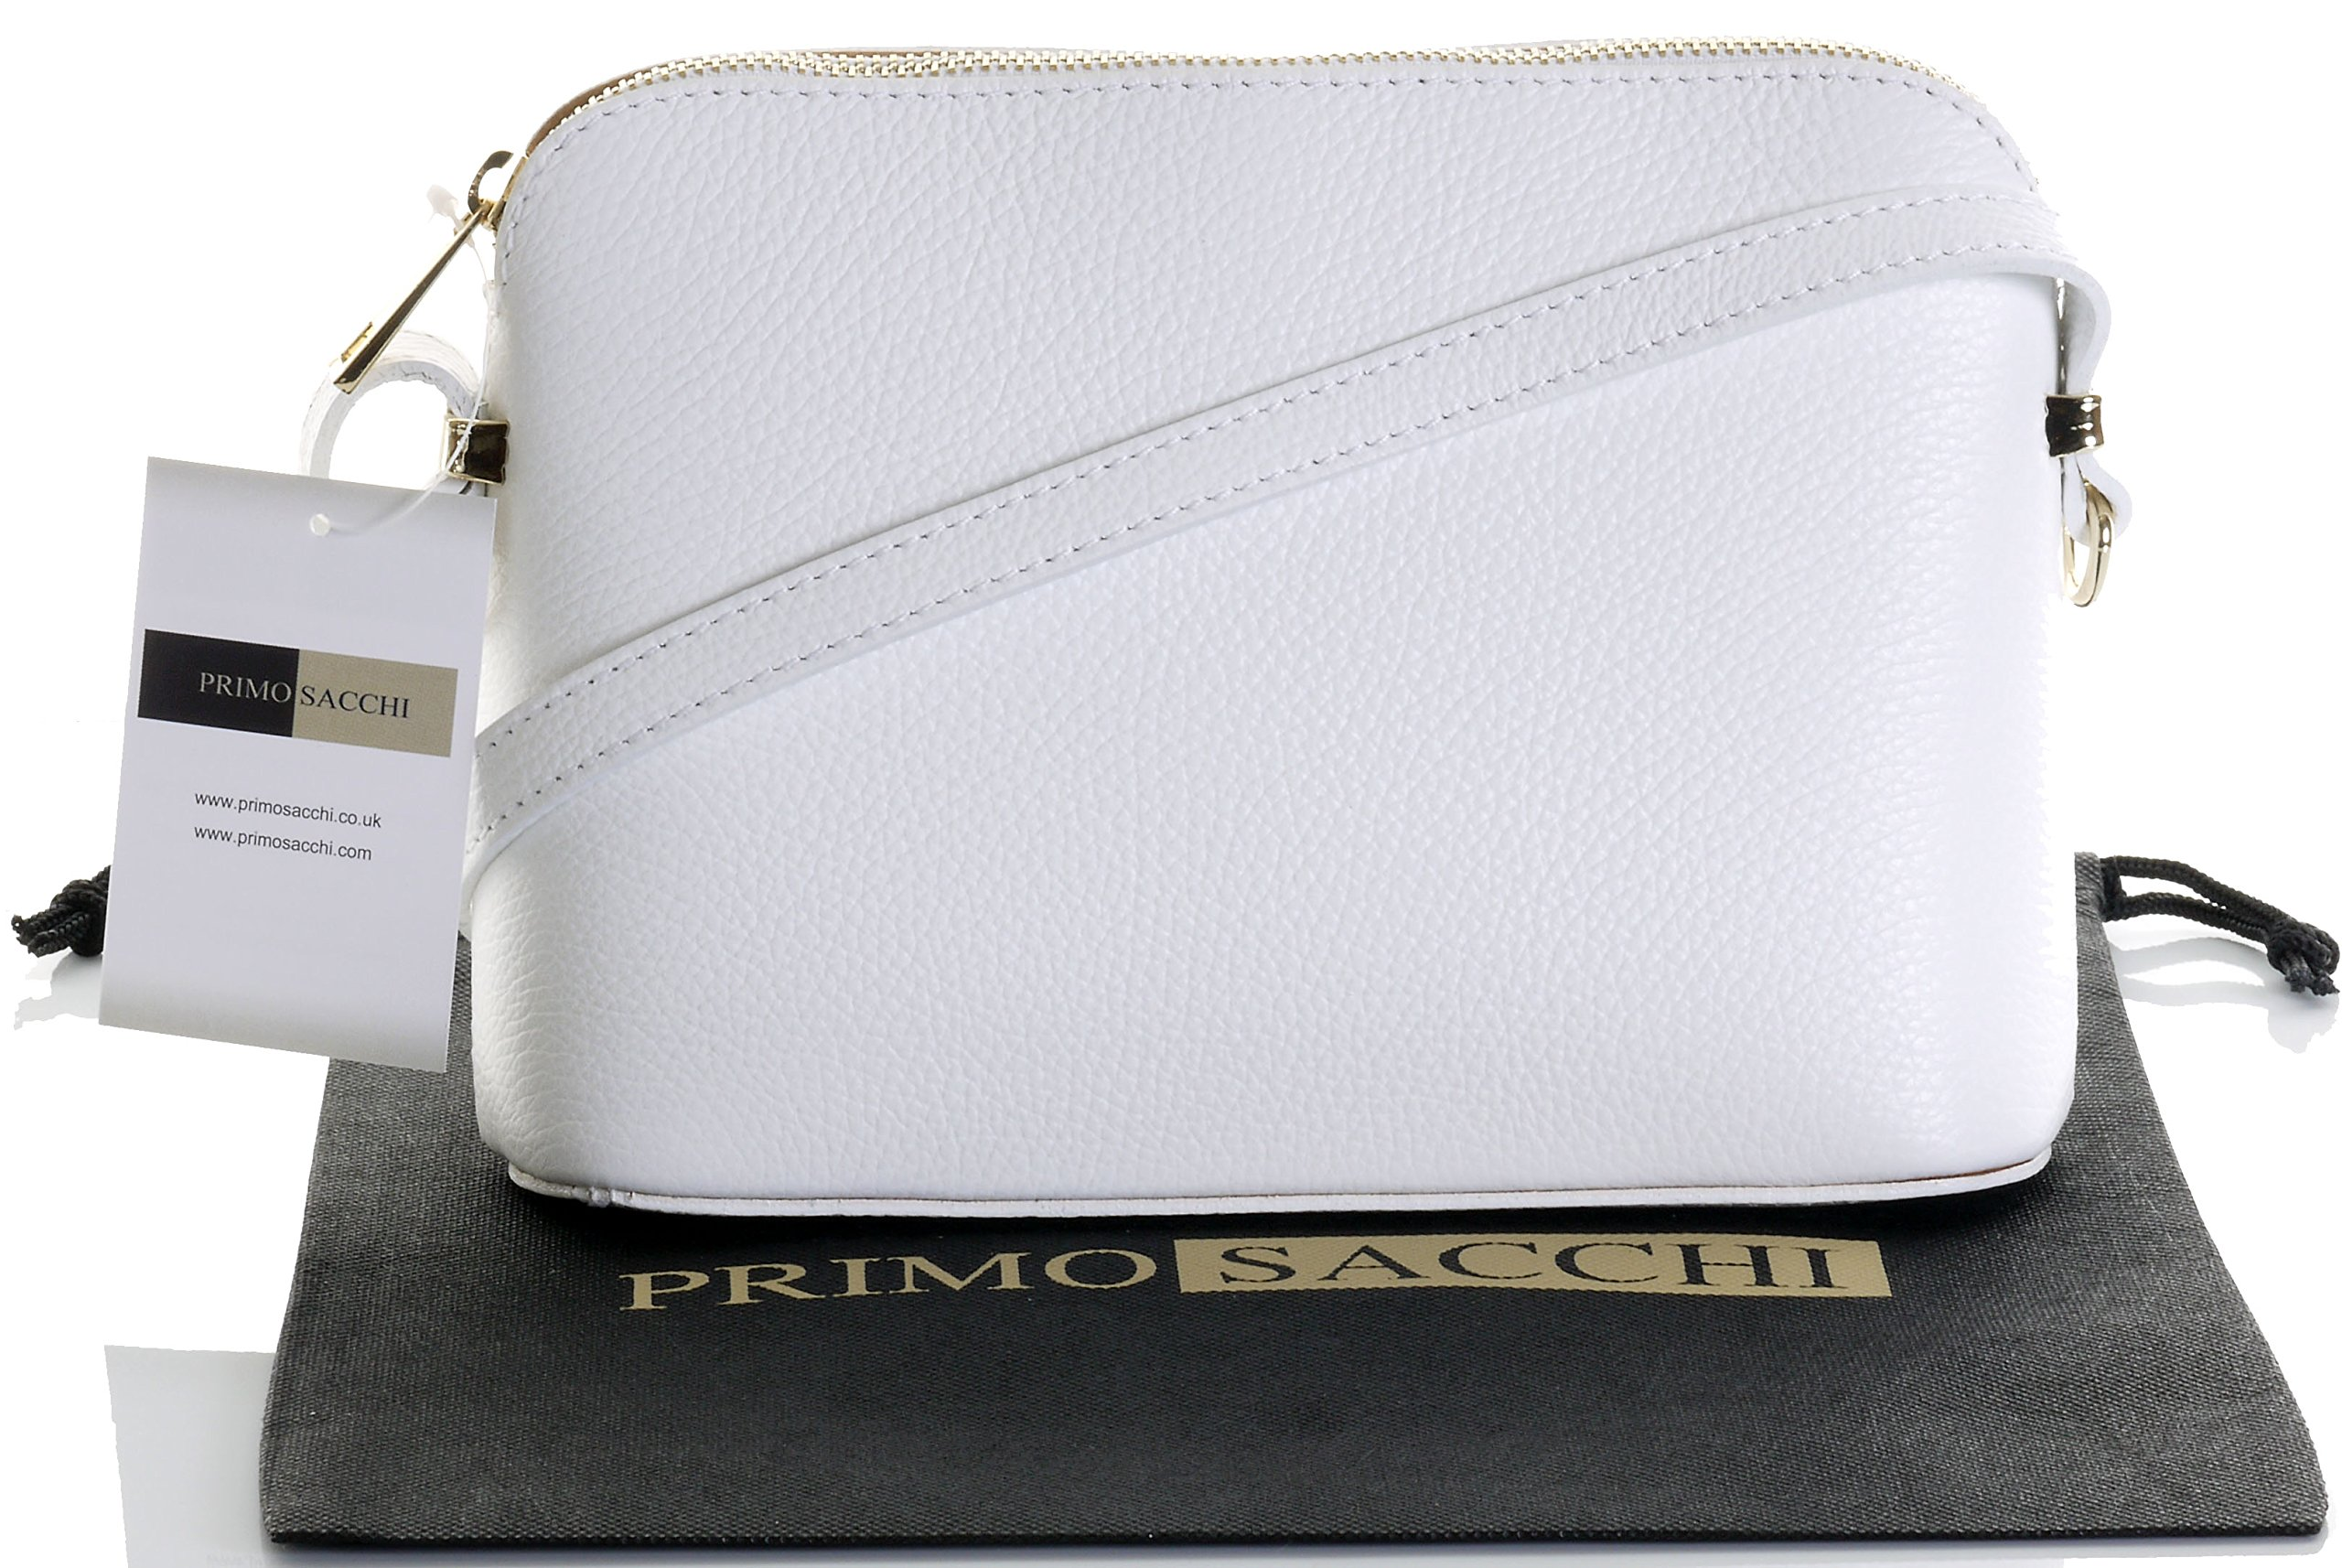 Italian Textured White Leather Hand Made Small Triangular Adjustable Strap Shoulder or Crossbody Bag. Includes a Branded Protective Storage Bag